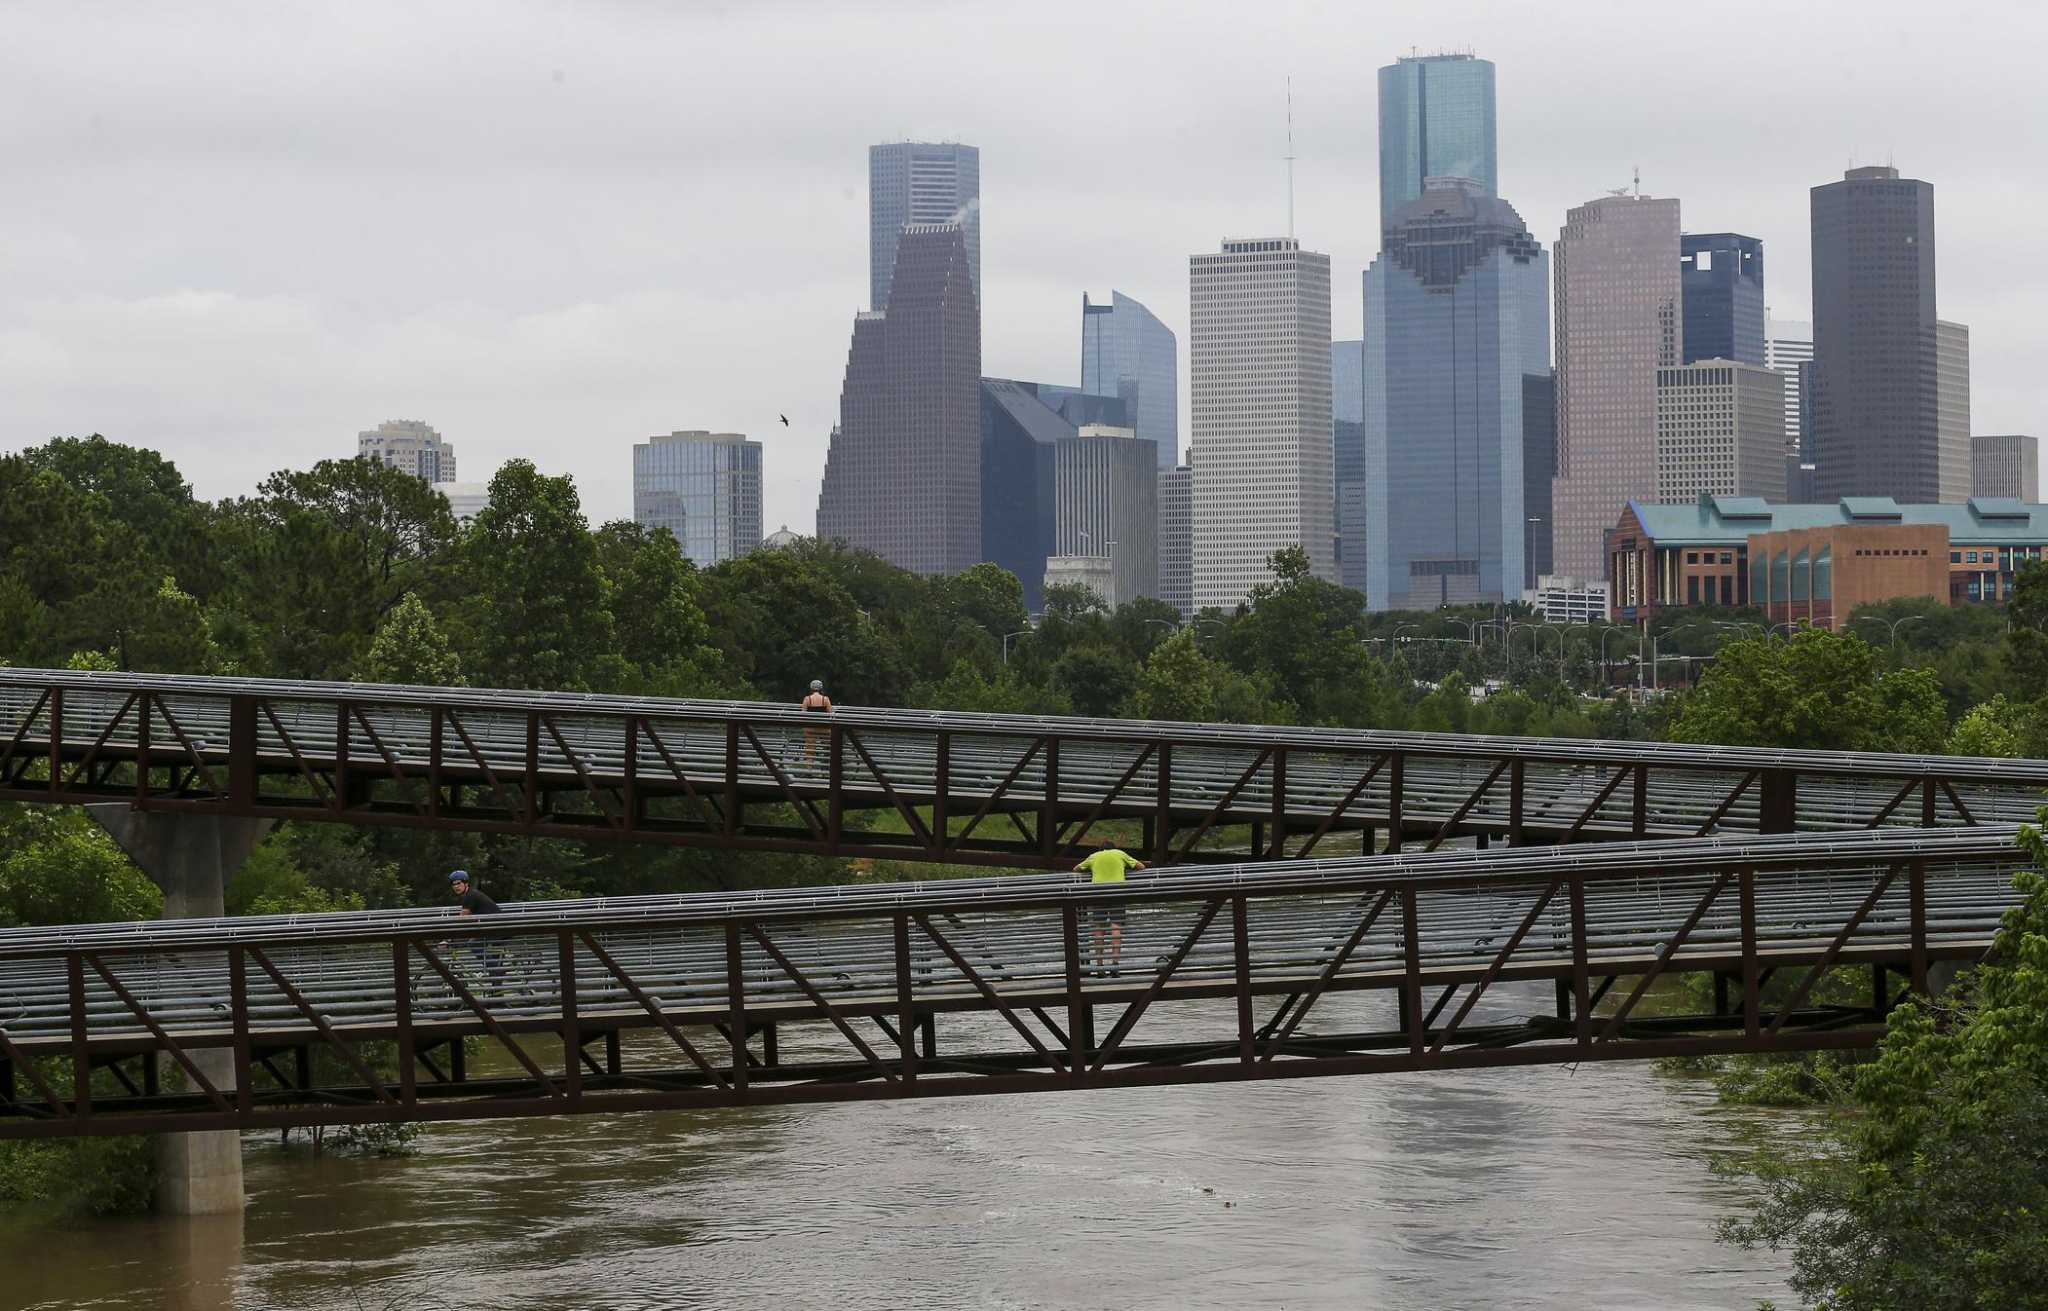 heavy rain blamed for sewer overflows in houston area